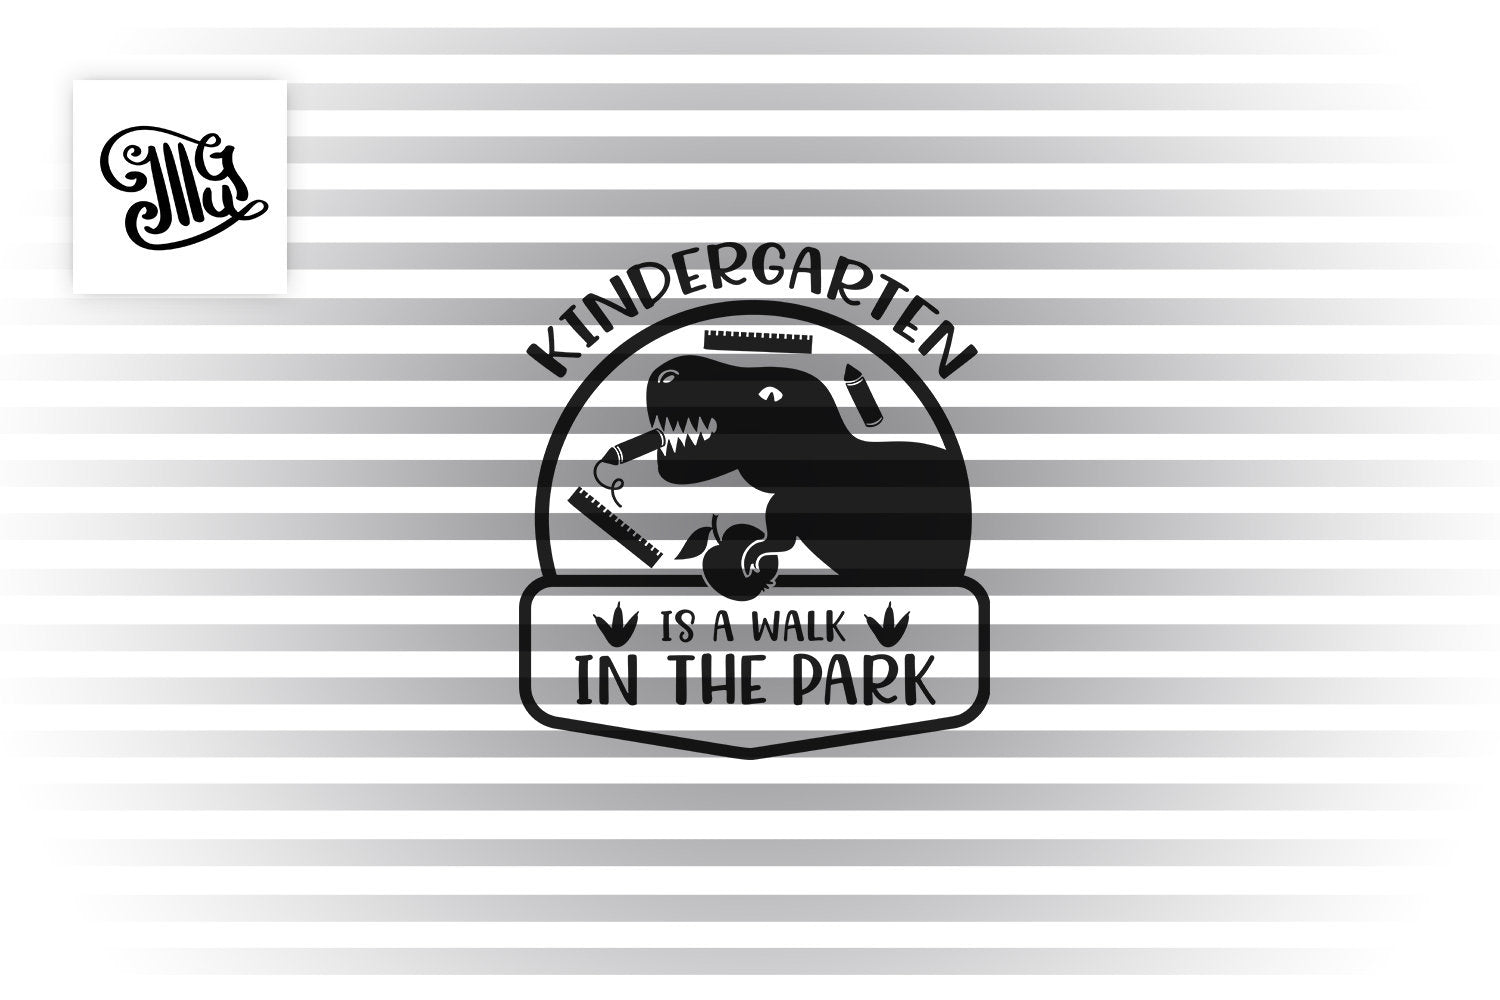 Kindergarten is a walk in the park SVG, kindergarten svg, kindergarten svg, kindergarten boy svg, first day of school svg, dinosaur svg,-by Illustrator Guru